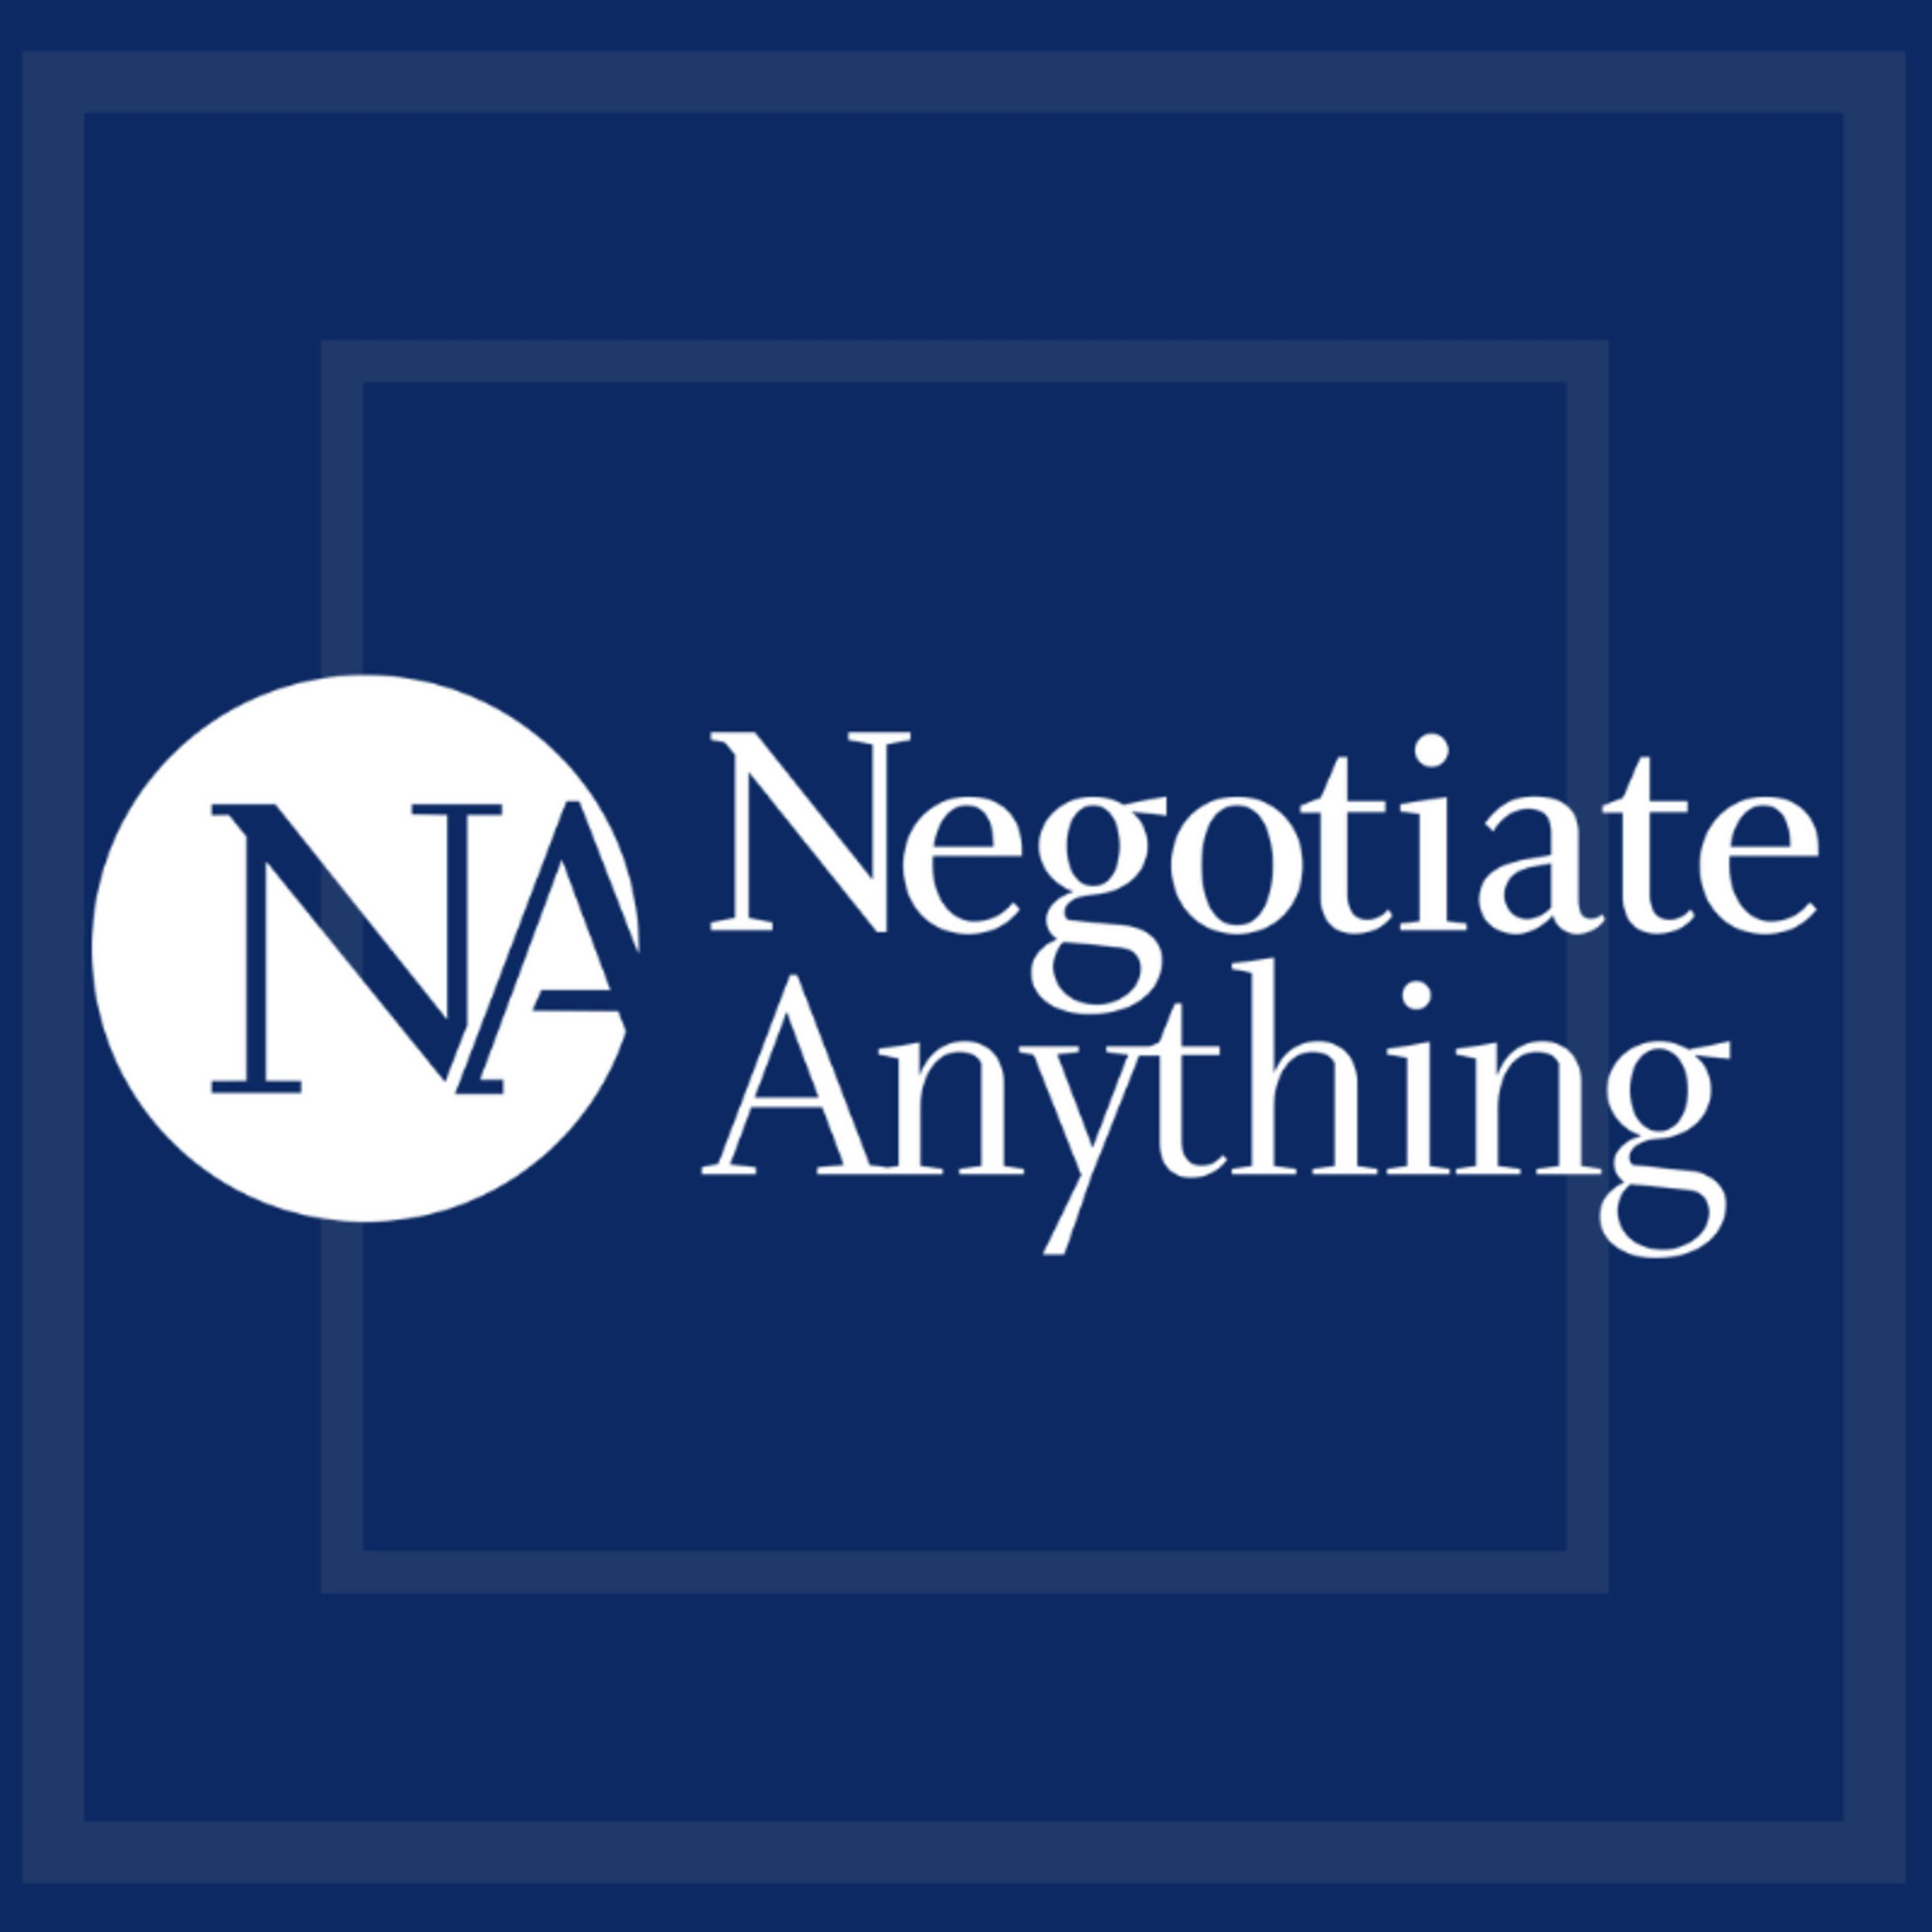 How to Make a Positive Impact in the Negotiation Industry with Maxwell Bevilacqua